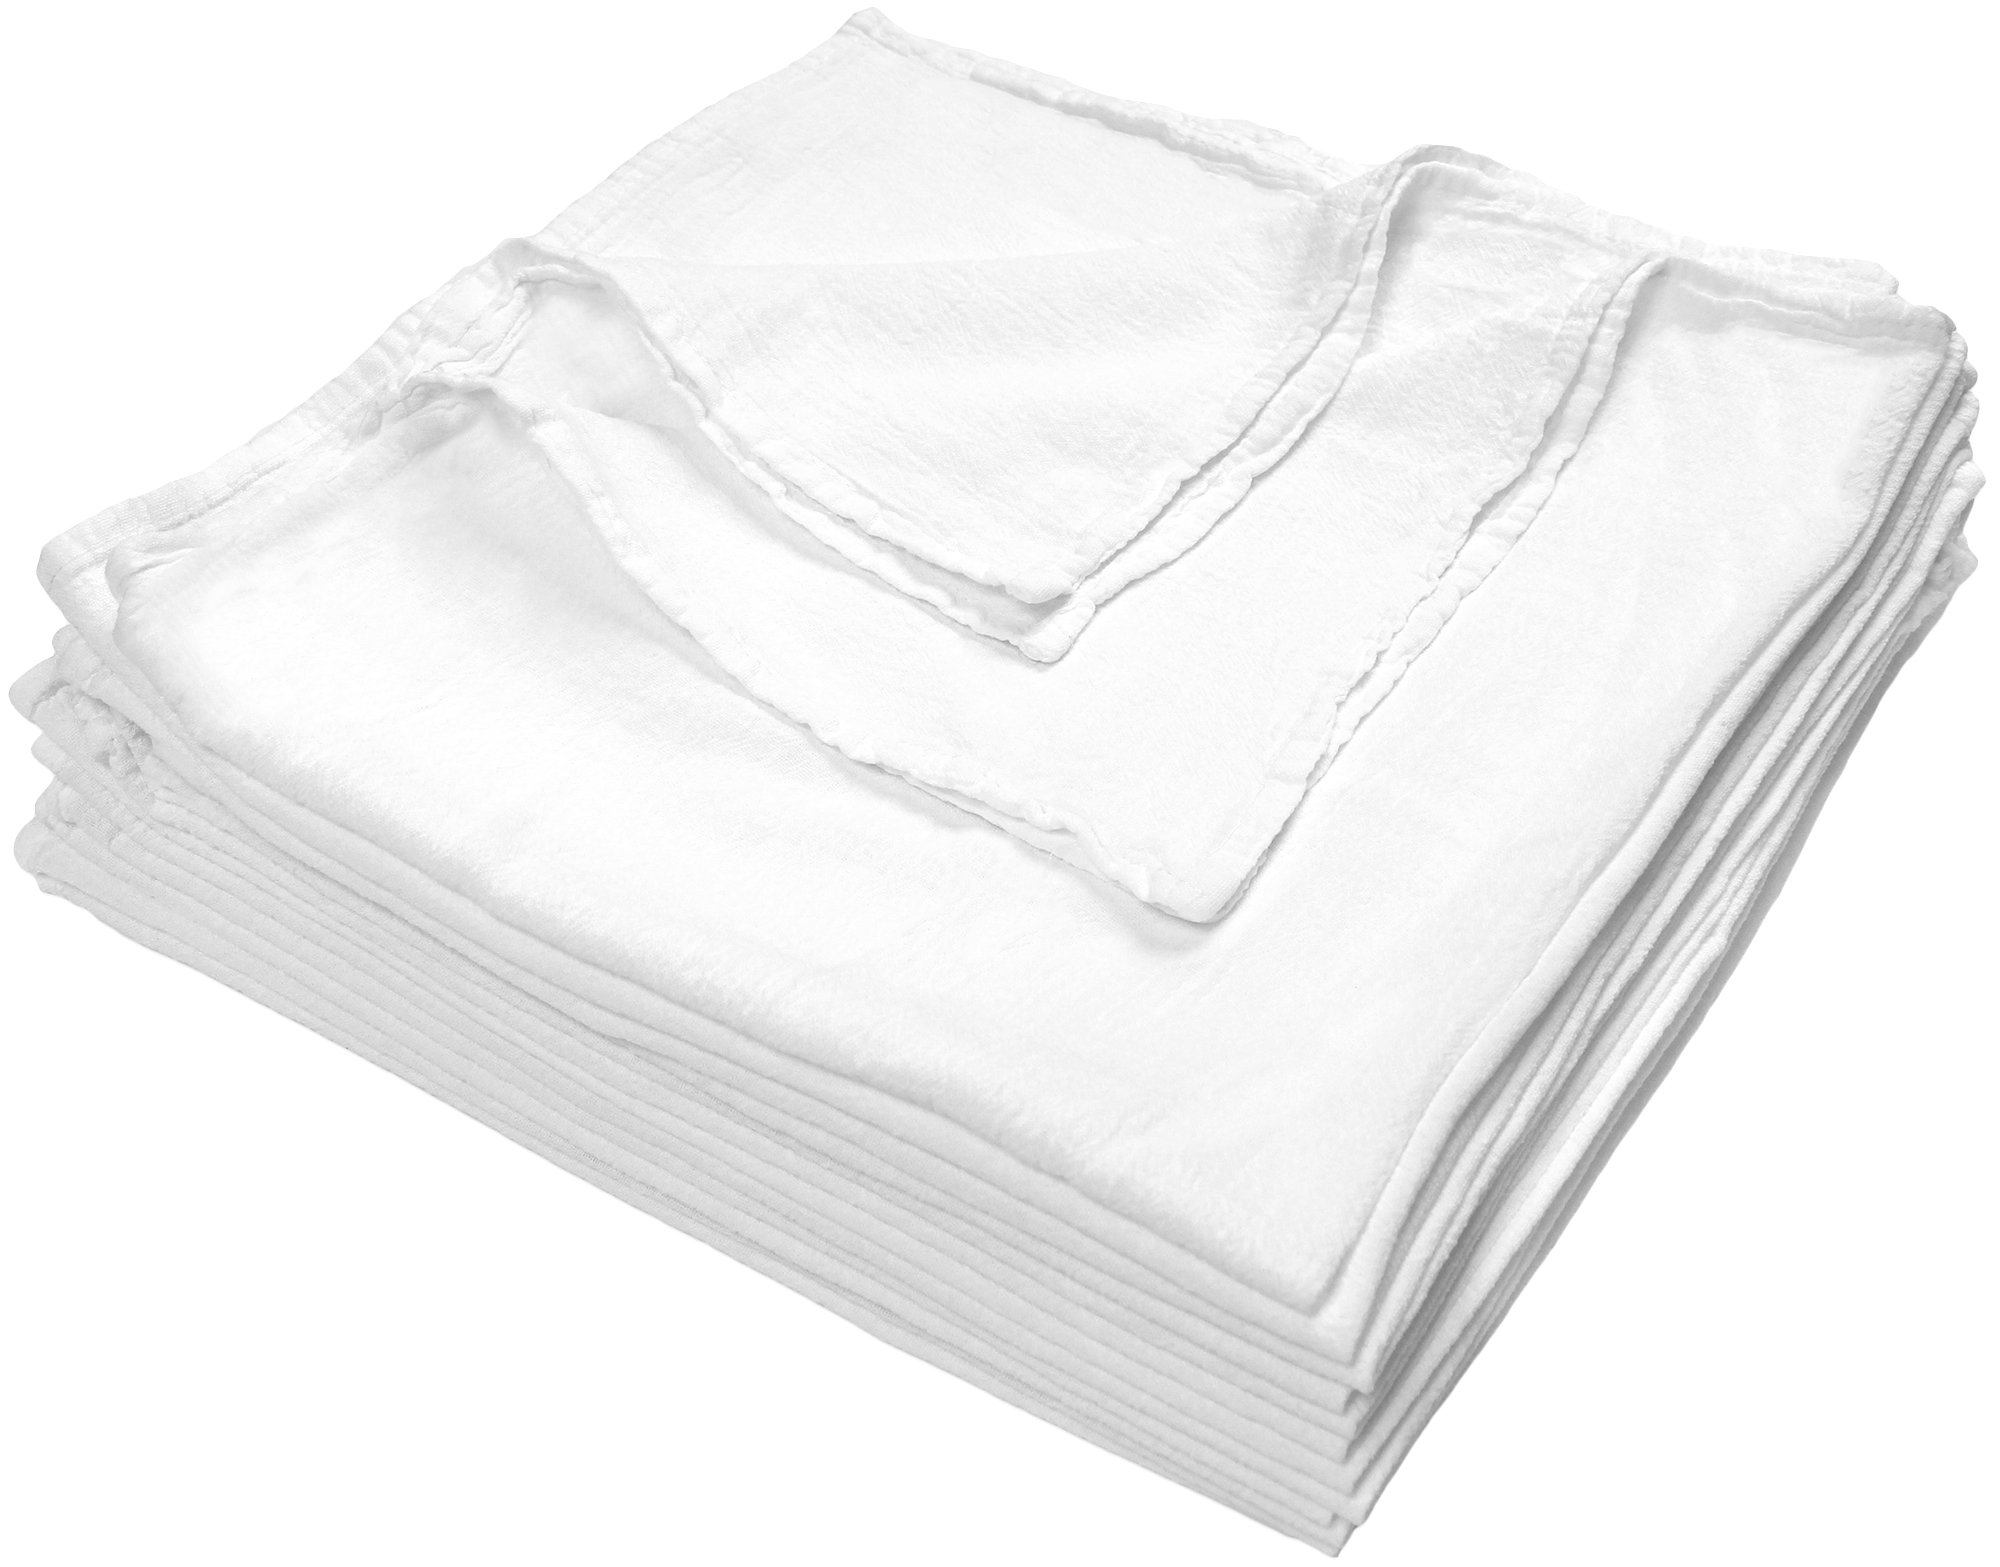 Nouvelle Legende Cotton Fast Dry Flour Sack Towels Commercial Grade 28 X 29 Inches (12 Pack) by Nouvelle Legende